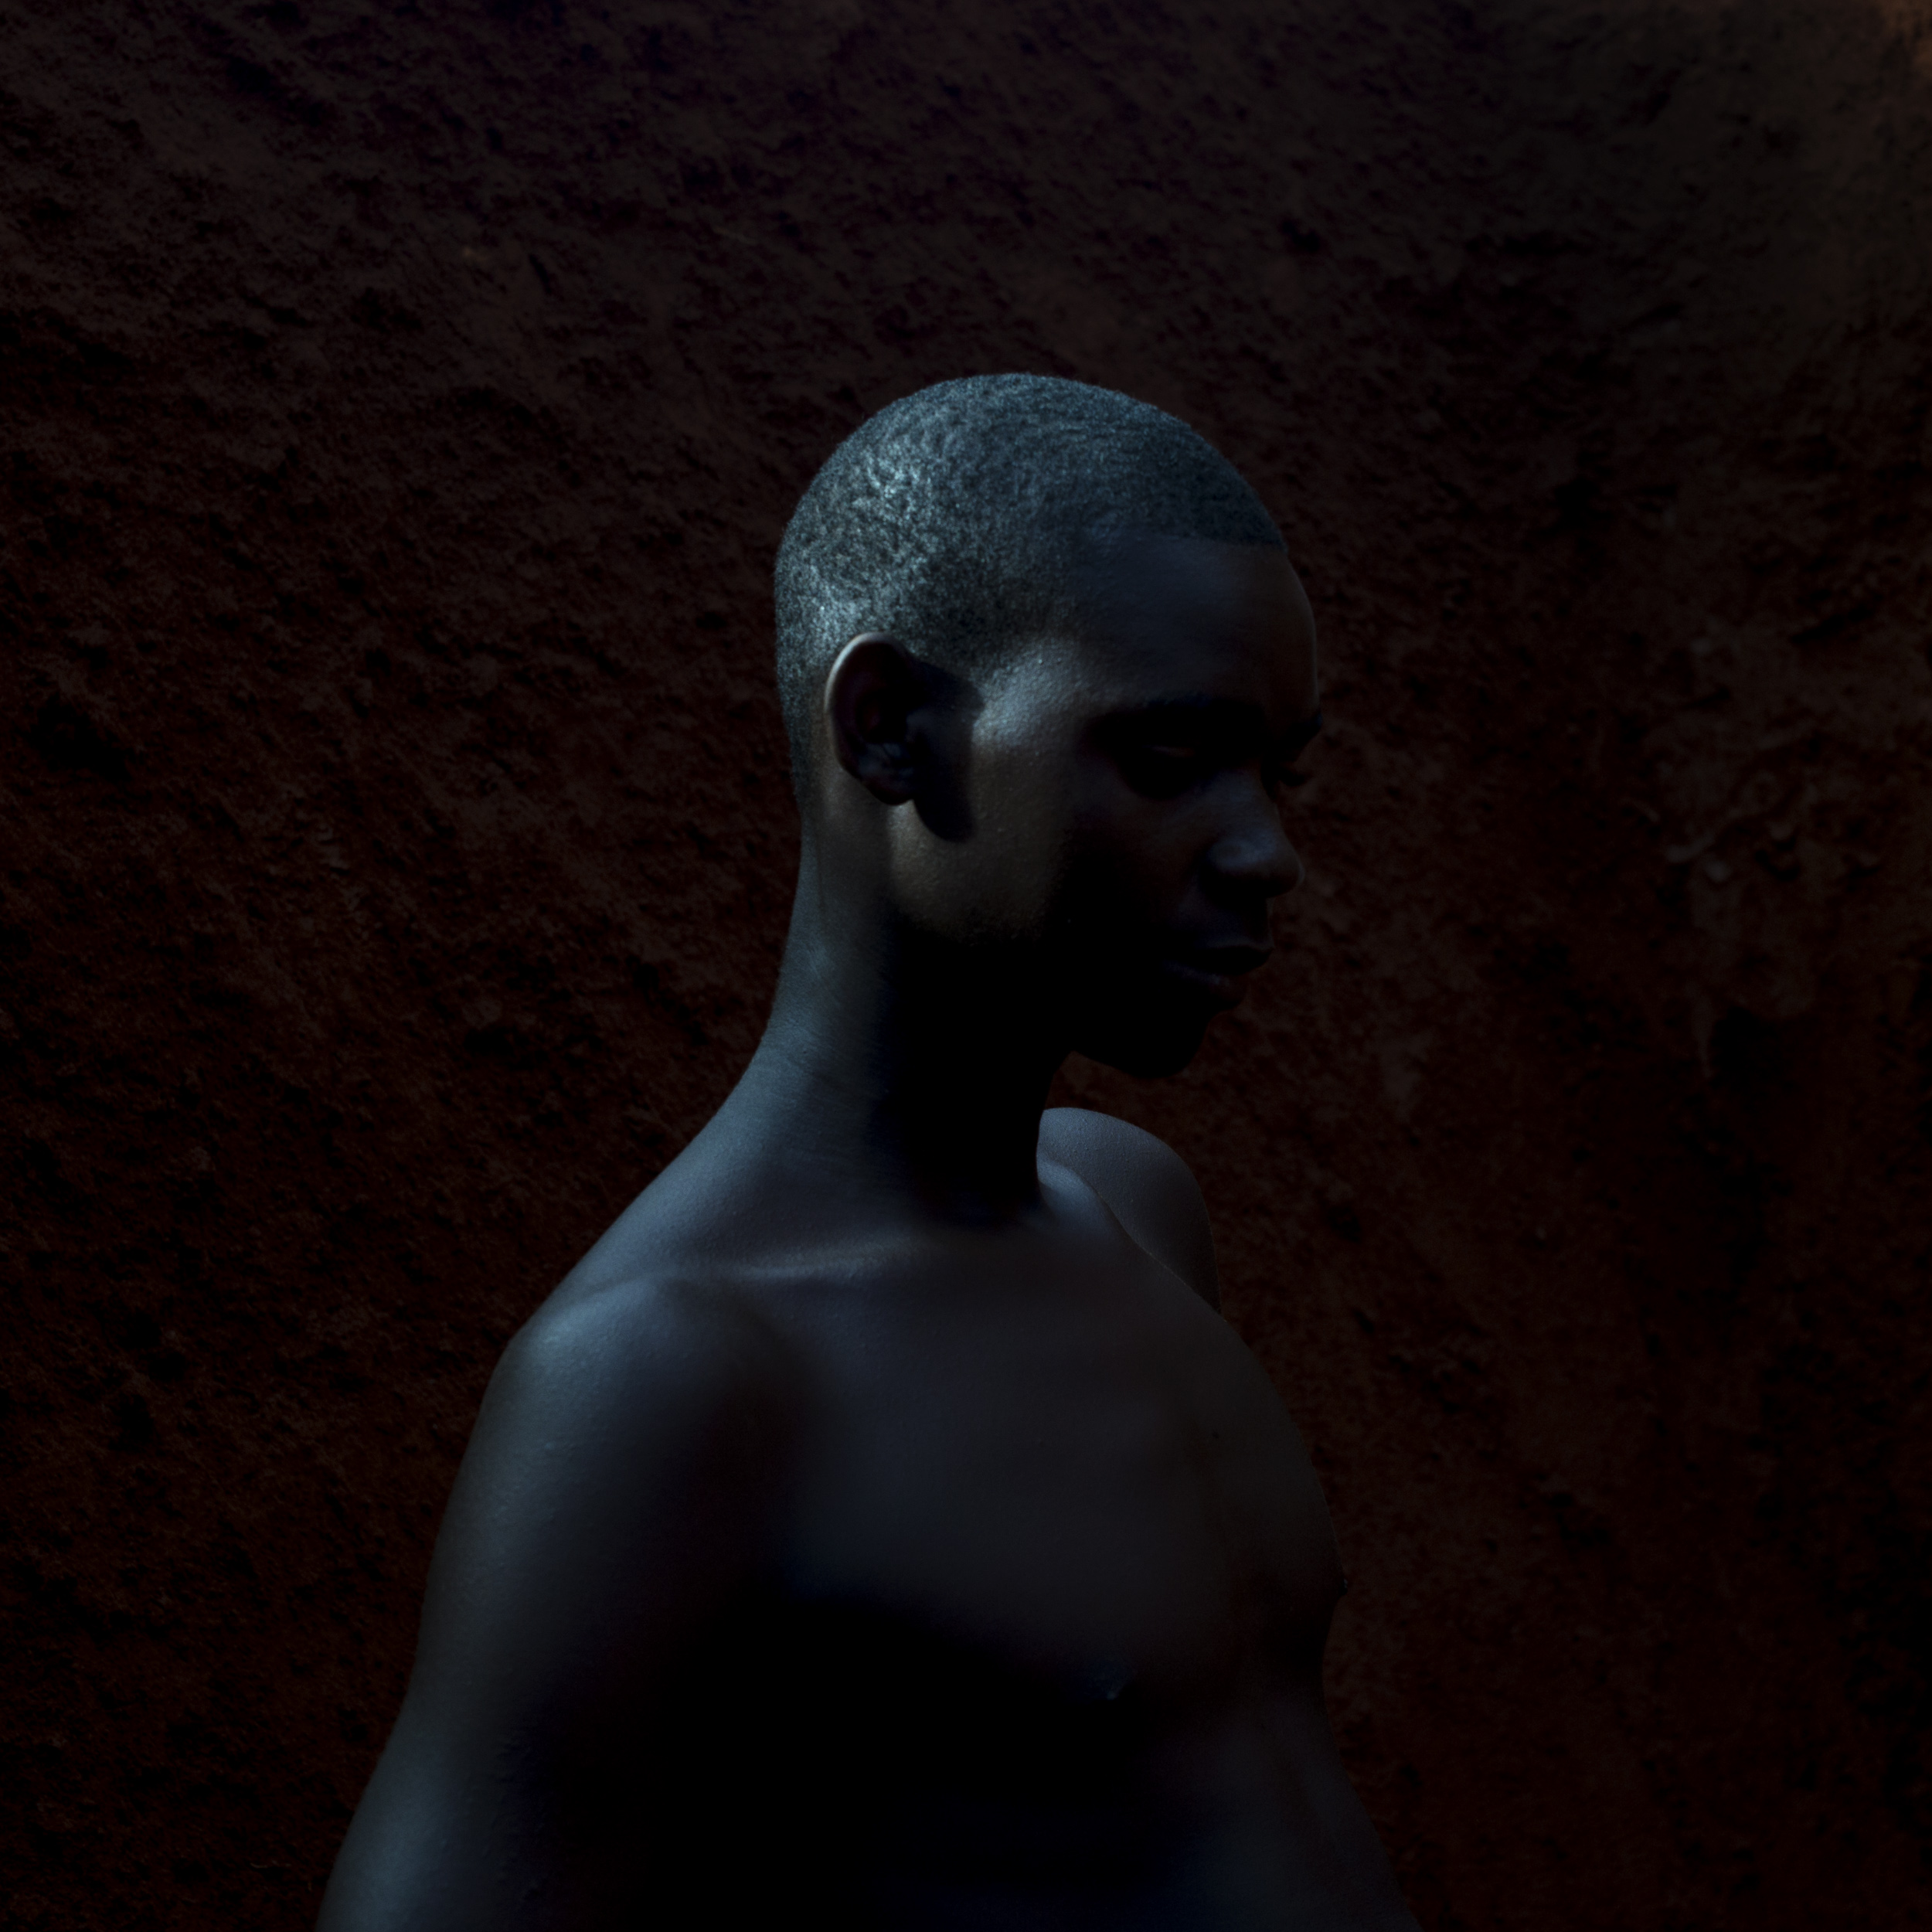 A miner from the Koro diamond mine, near Carnot, poses for a portrait, Oct. 19, 2015.